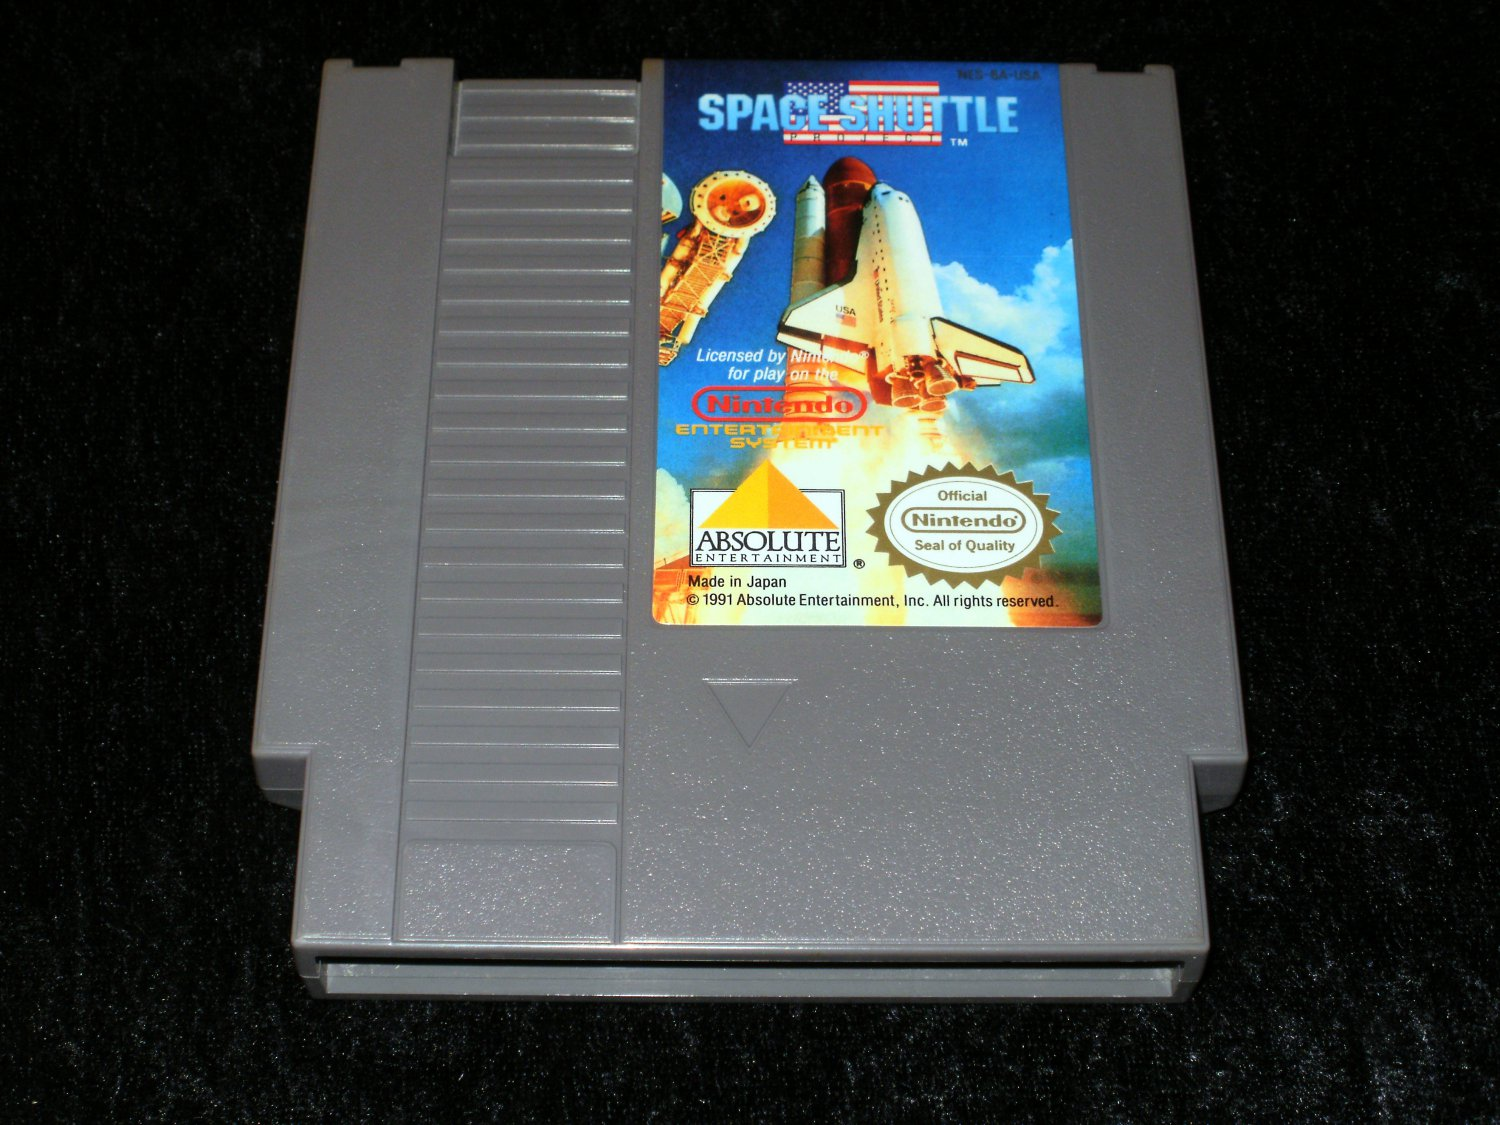 Space Shuttle Project - Nintendo NES - Rare